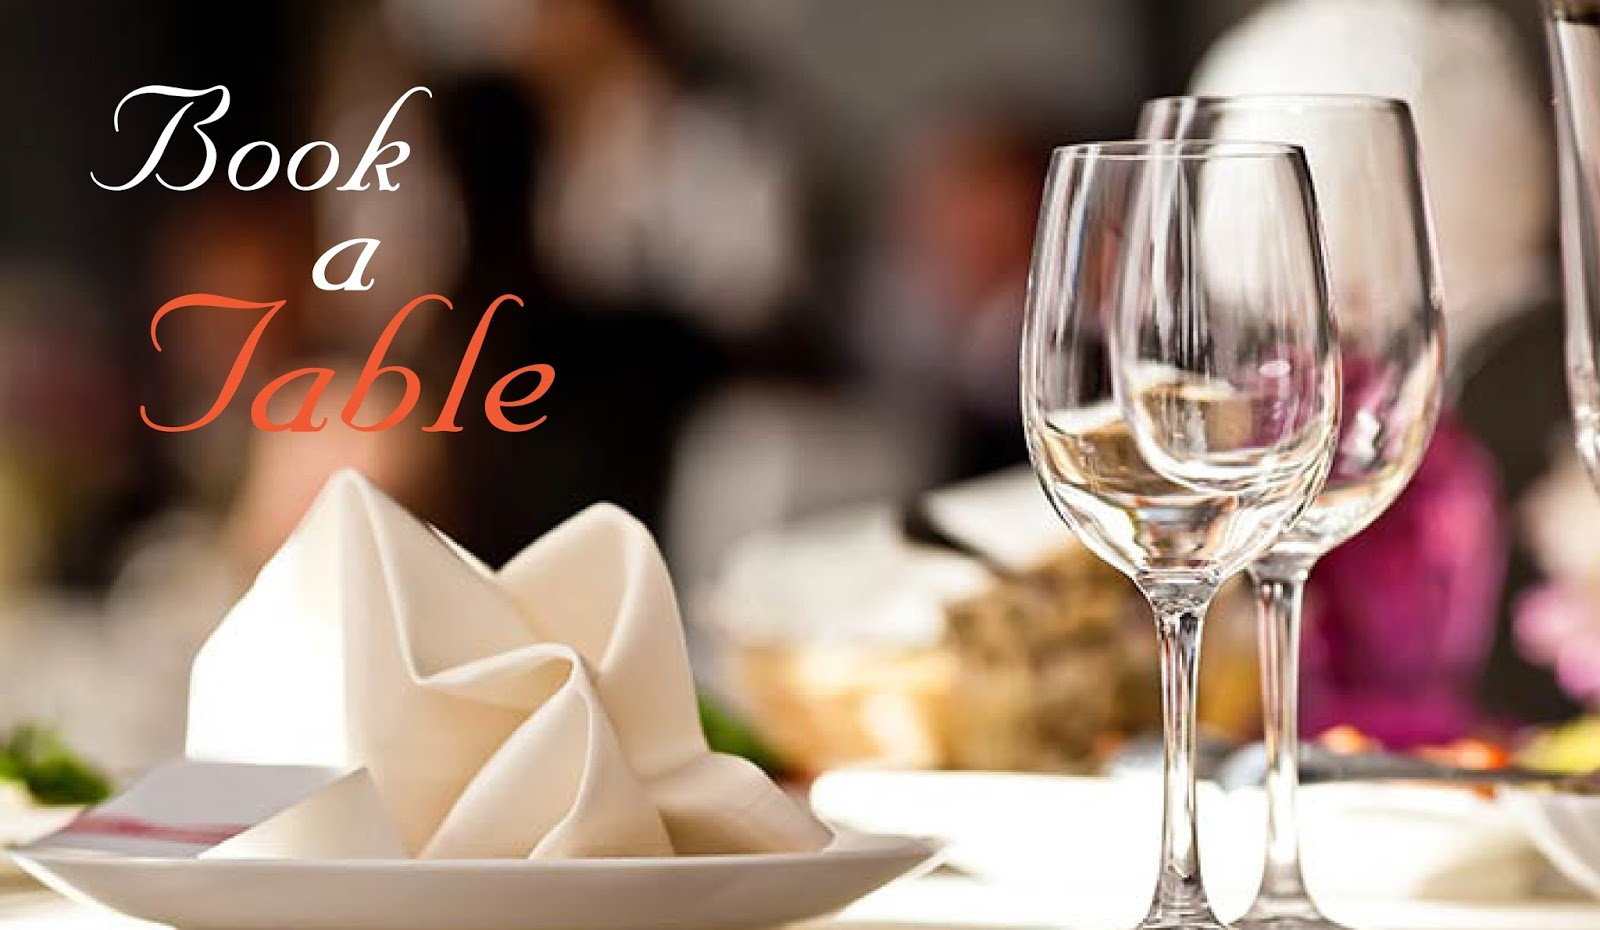 Online Table Booking Reserve A Table Book Restaurant Table Online - Restaurant table booking